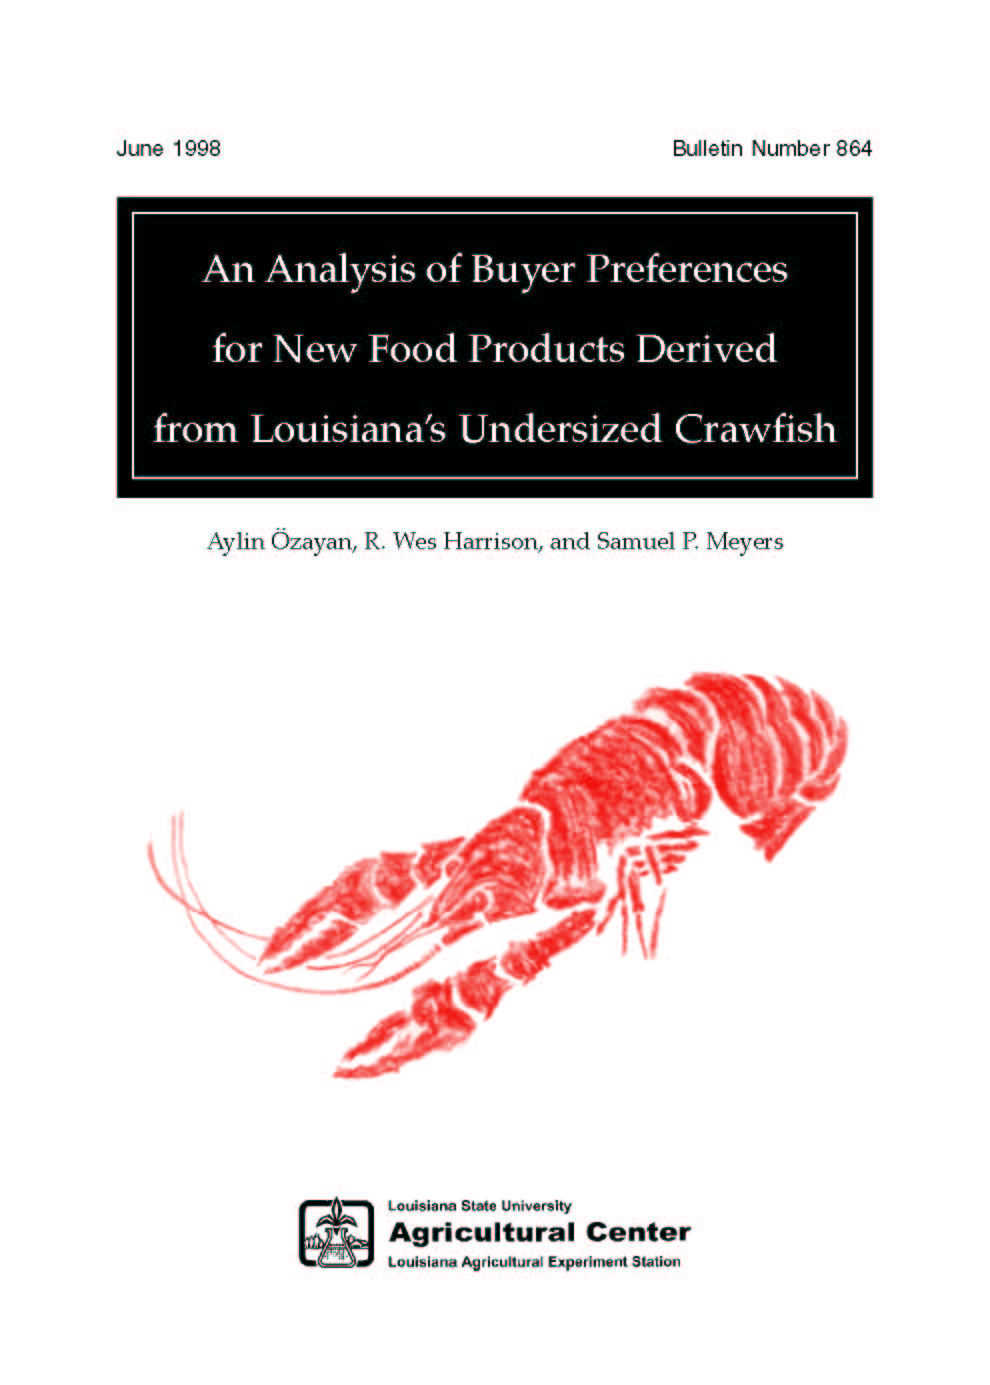 An Analysis of Buyer Preferences for New Food Products Derived from Louisianas Undersized Crawfish (1998)